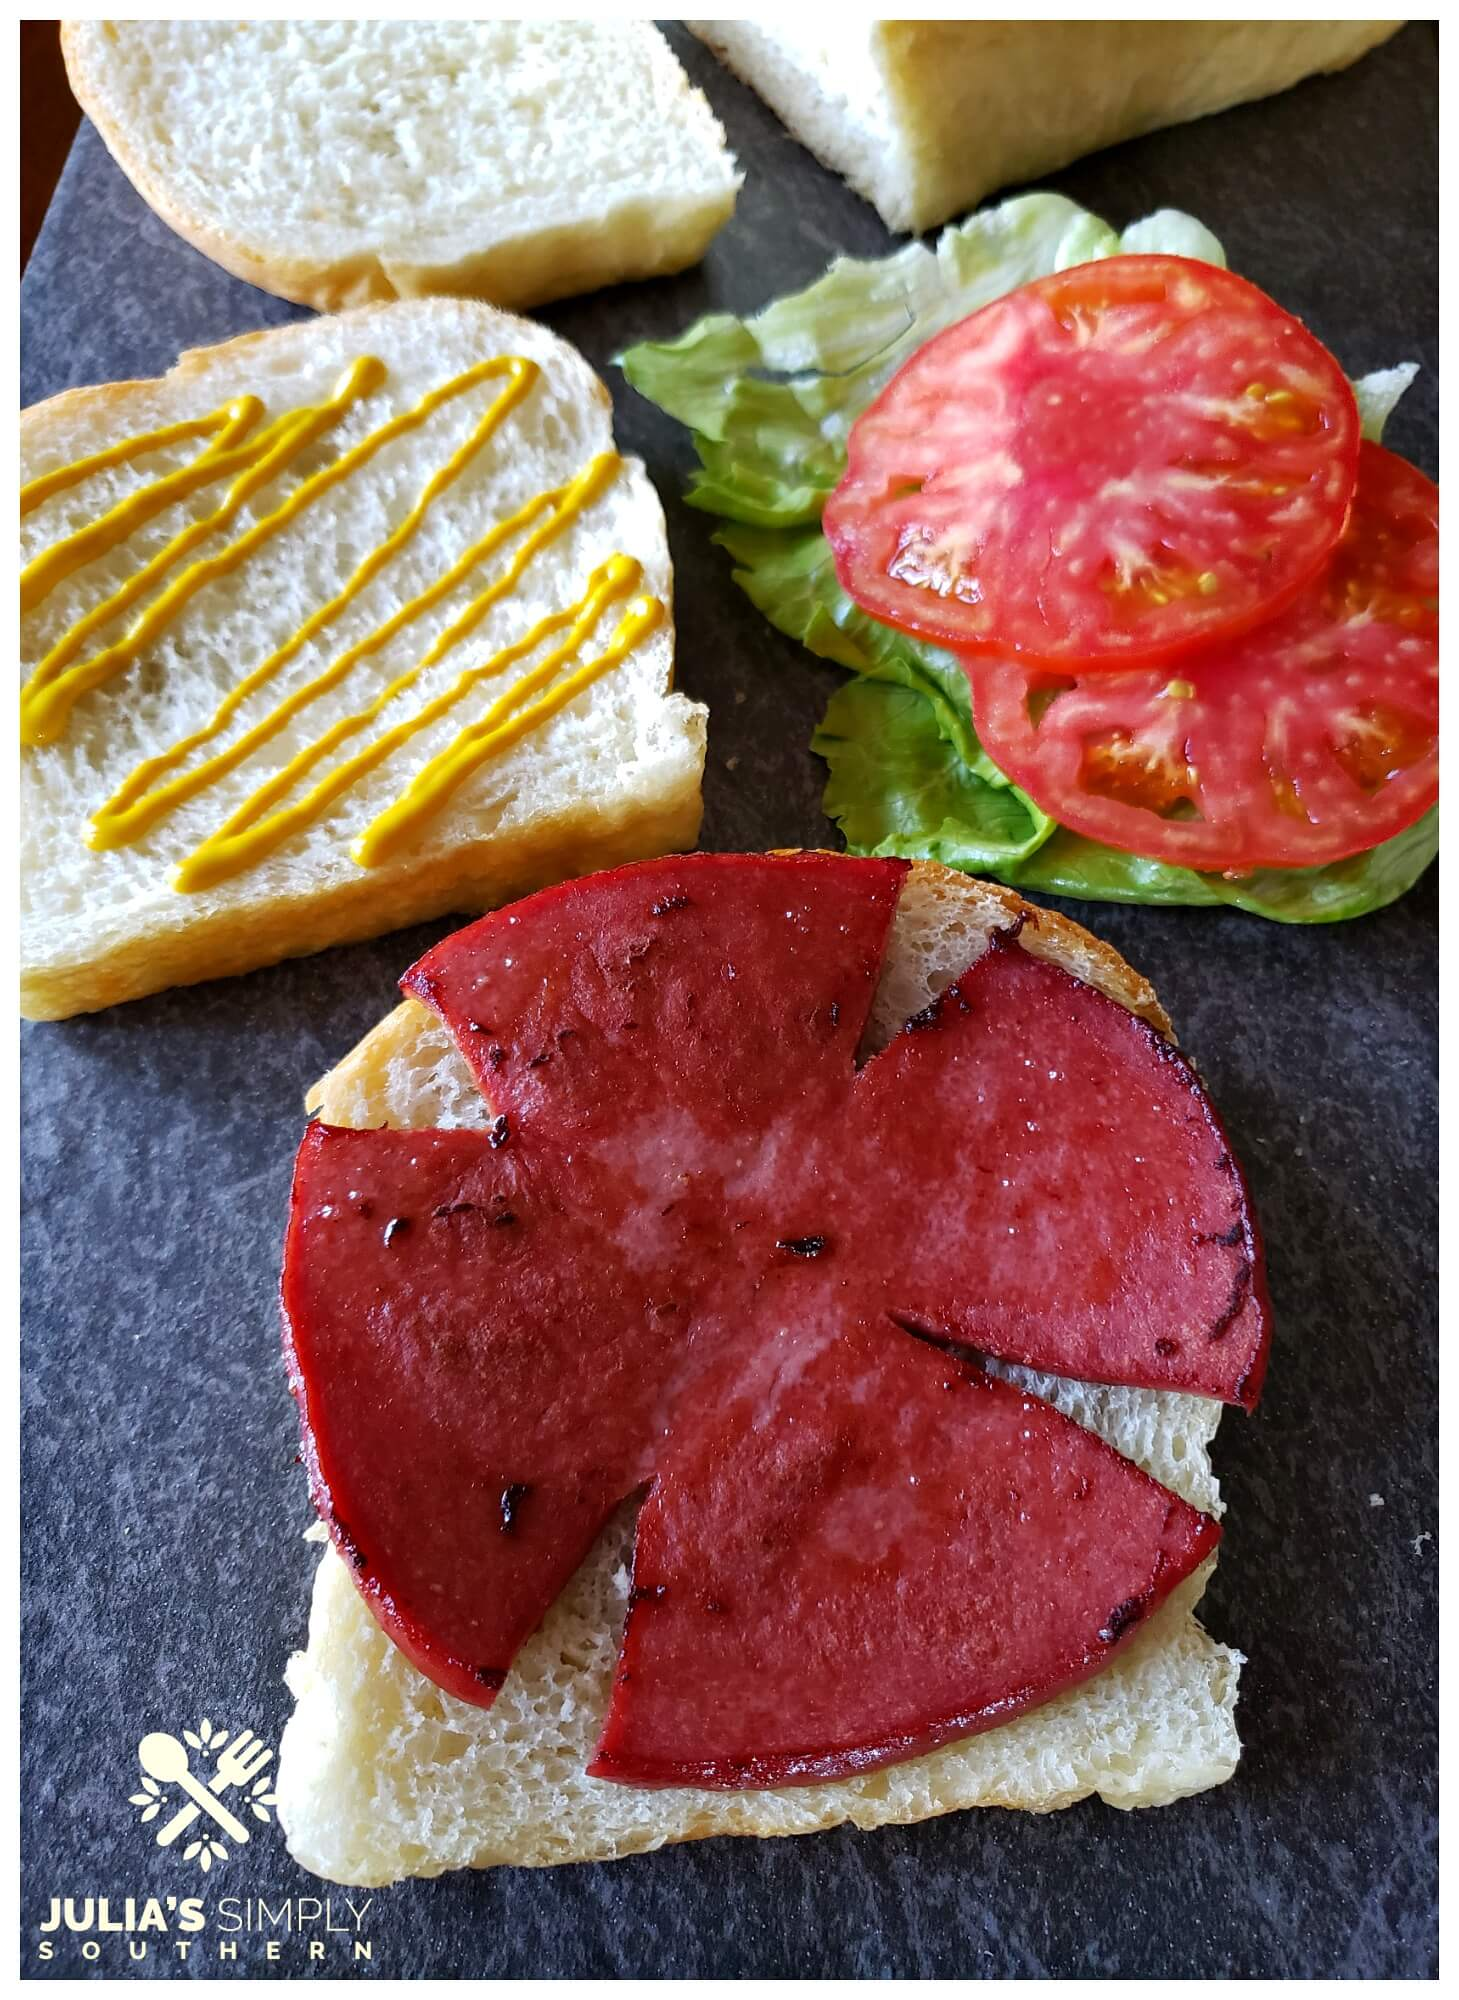 Gourmet fried bologna sandwich